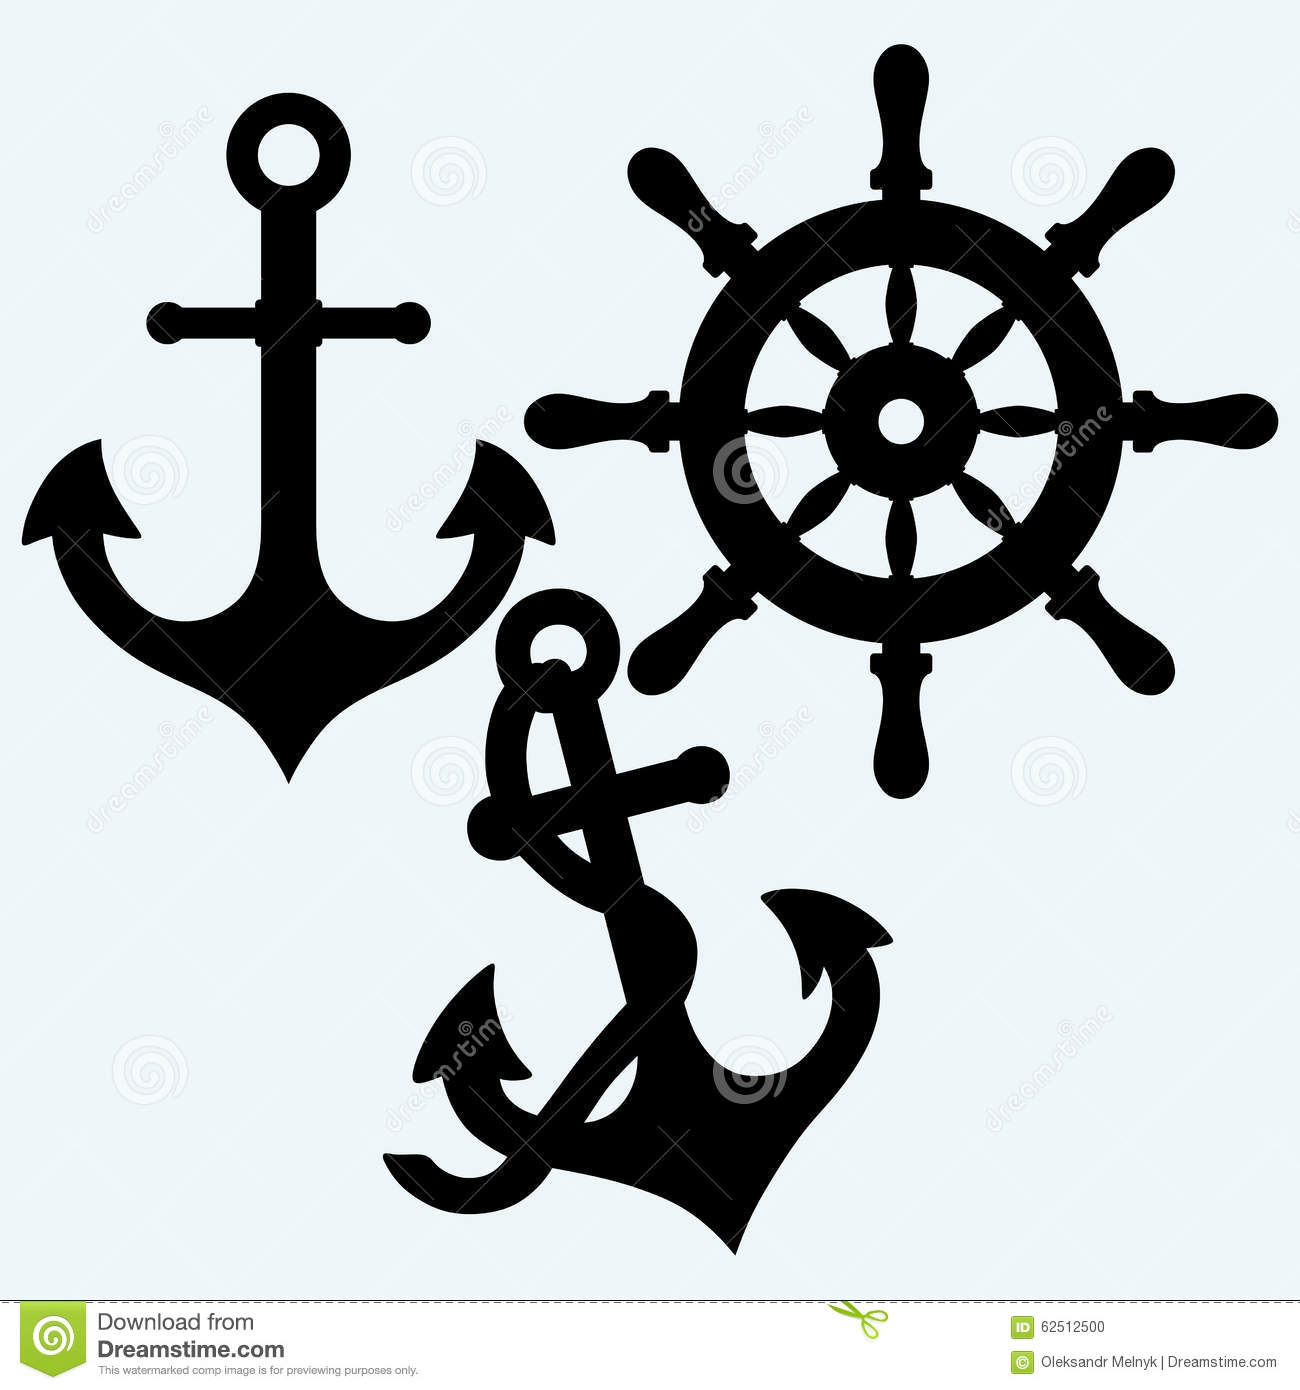 Anchor and rudder. Isolated on blue background. Vector silhouettes.